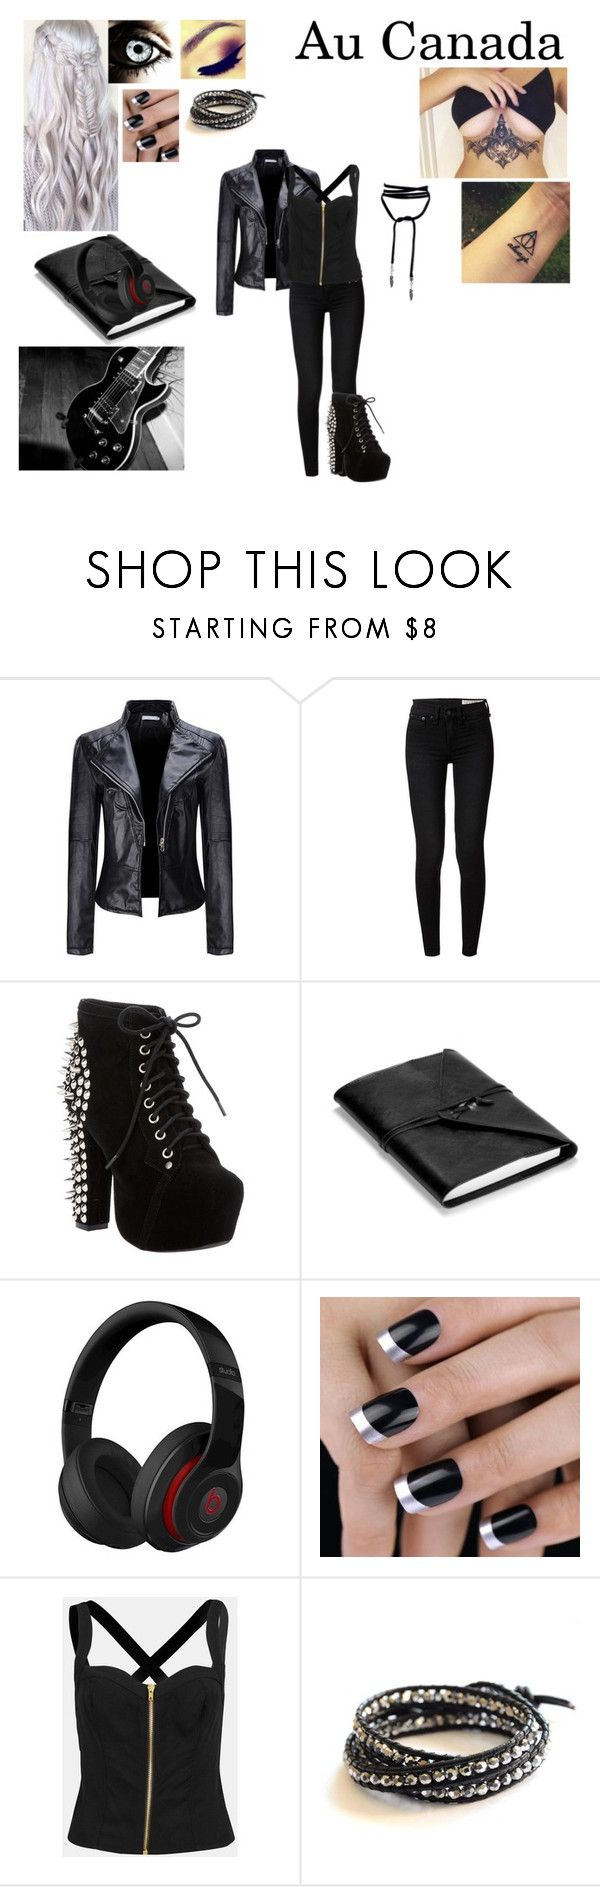 """Revenge tome I : Louana (Canada)"" by camille-93200 ❤ liked on Polyvore featuring WithChic, rag & bone, Jeffrey Campbell, Aspinal of London, Topshop and BijouxBar by Vivien Frank"